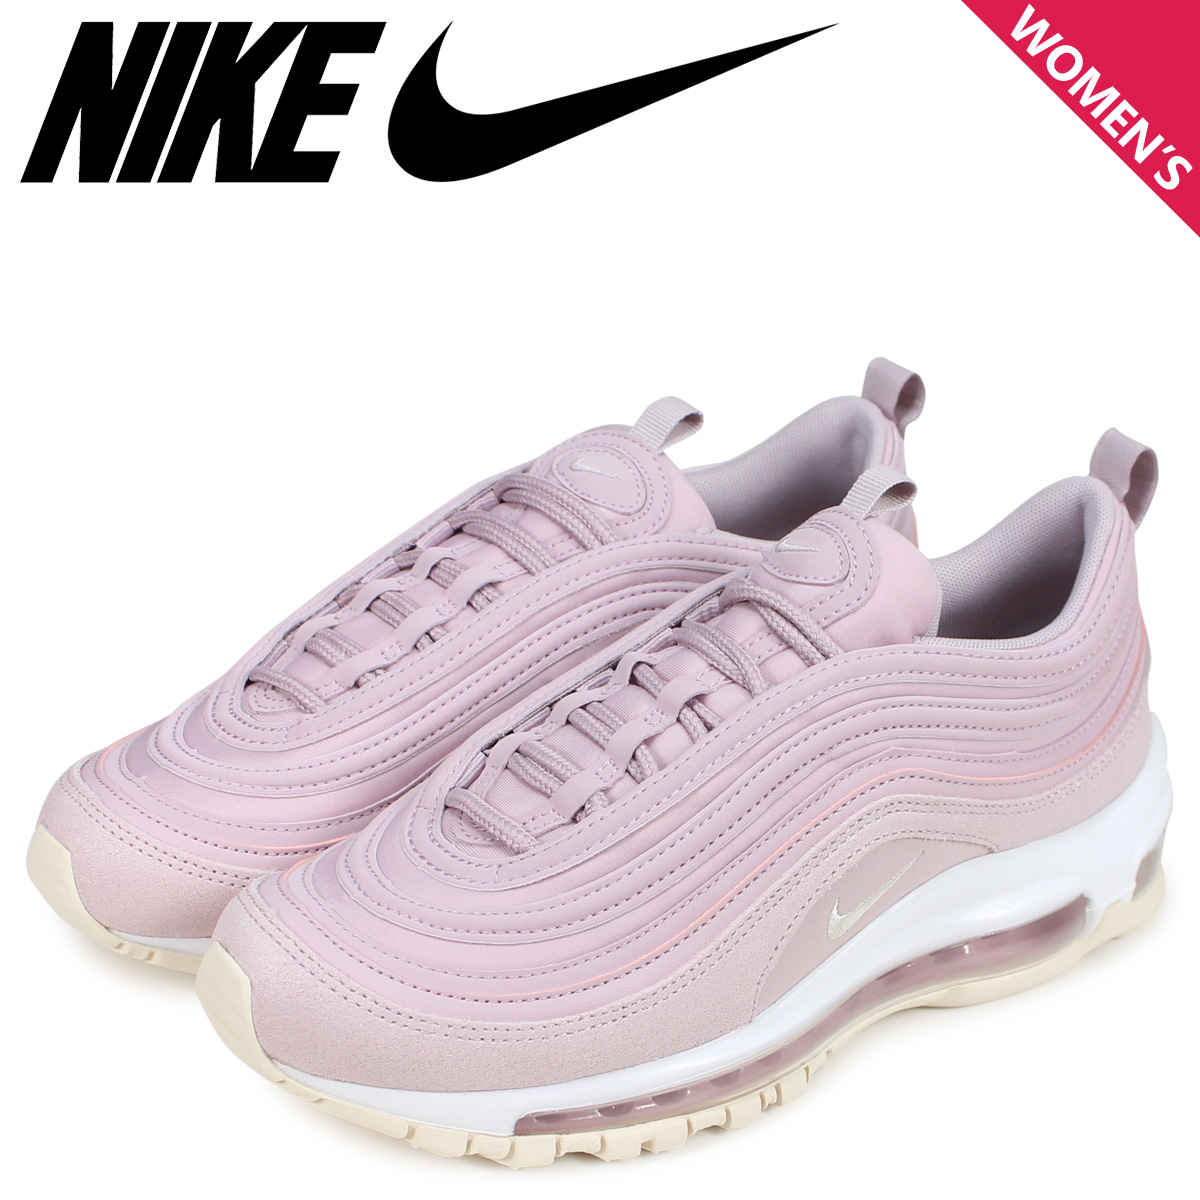 NIKE Kie Ney AMAX 97 sneakers Lady's WMNS AIR MAX 97 PREMIUM pink 917,646 500